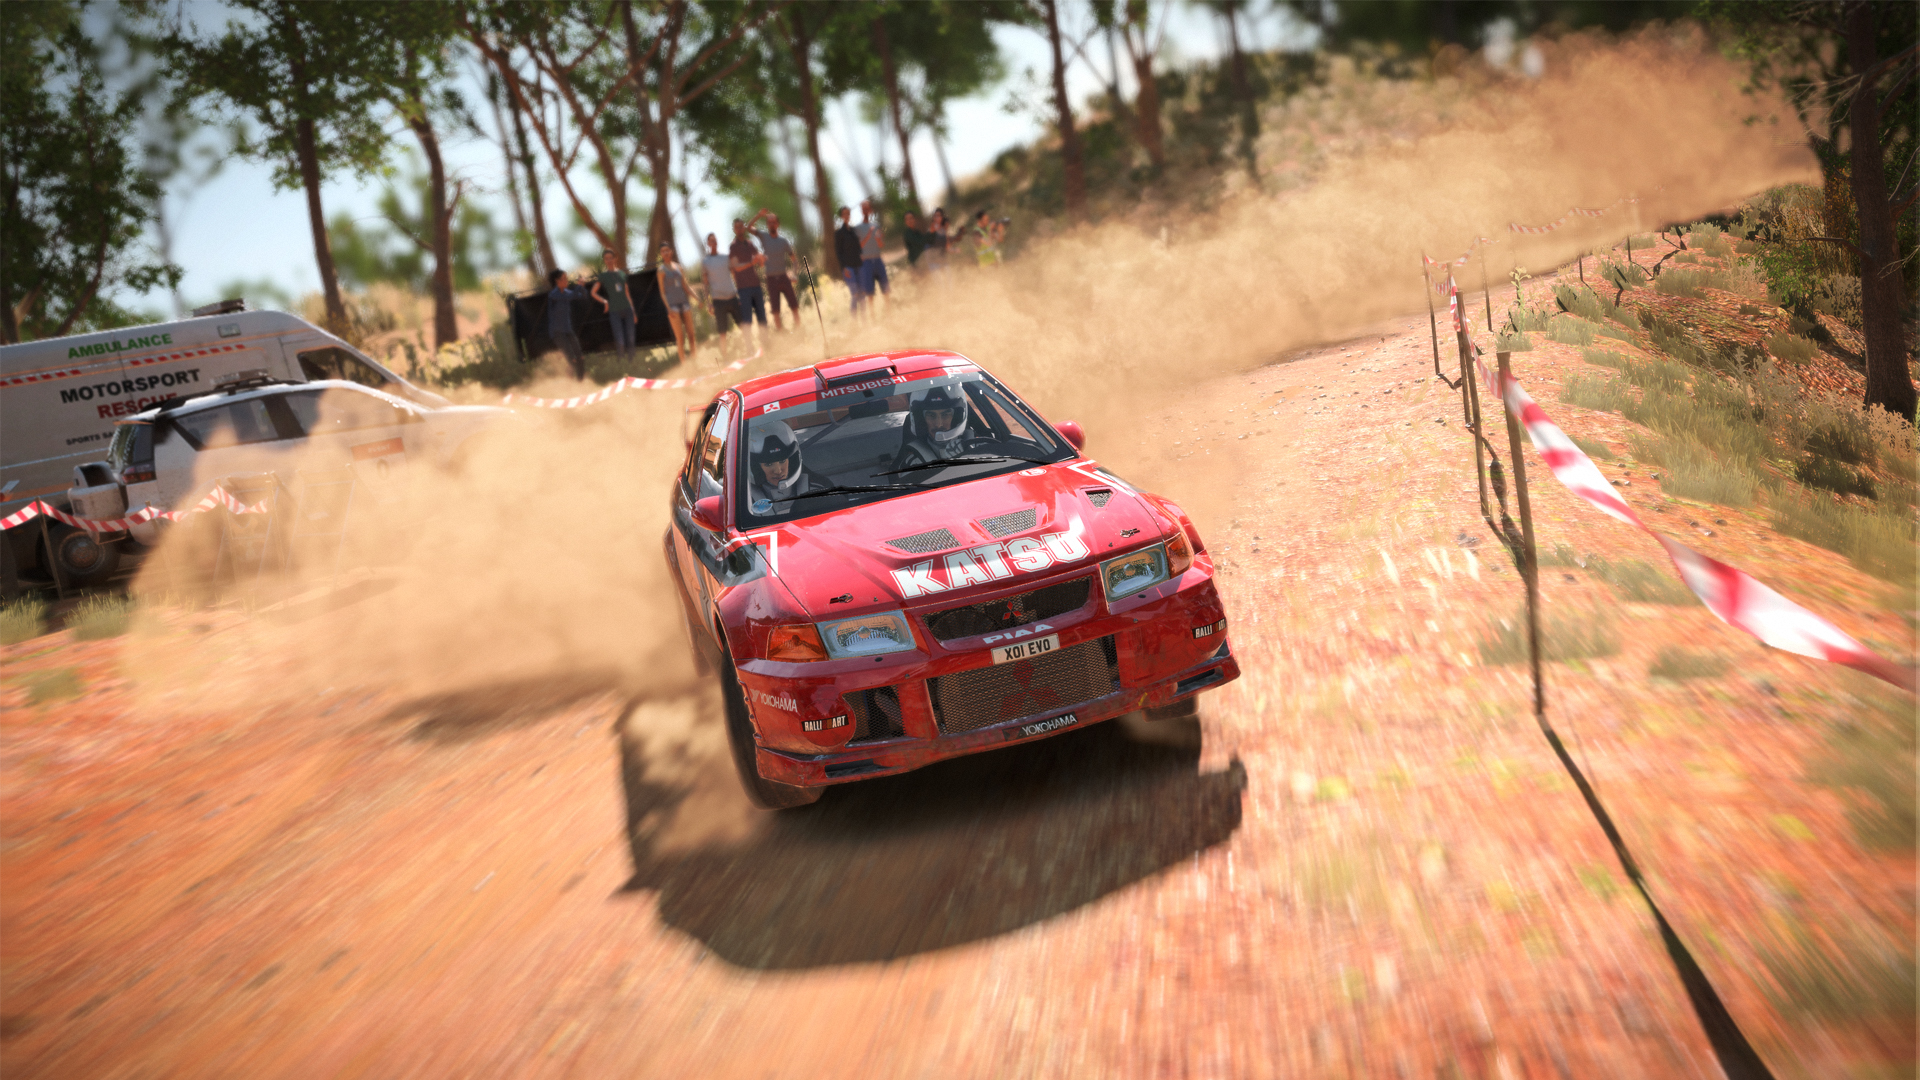 download dirt 4 complete collection edition all cars cracked by reloaded elamigos include all dlc and latest update copiapop dikokosmiko